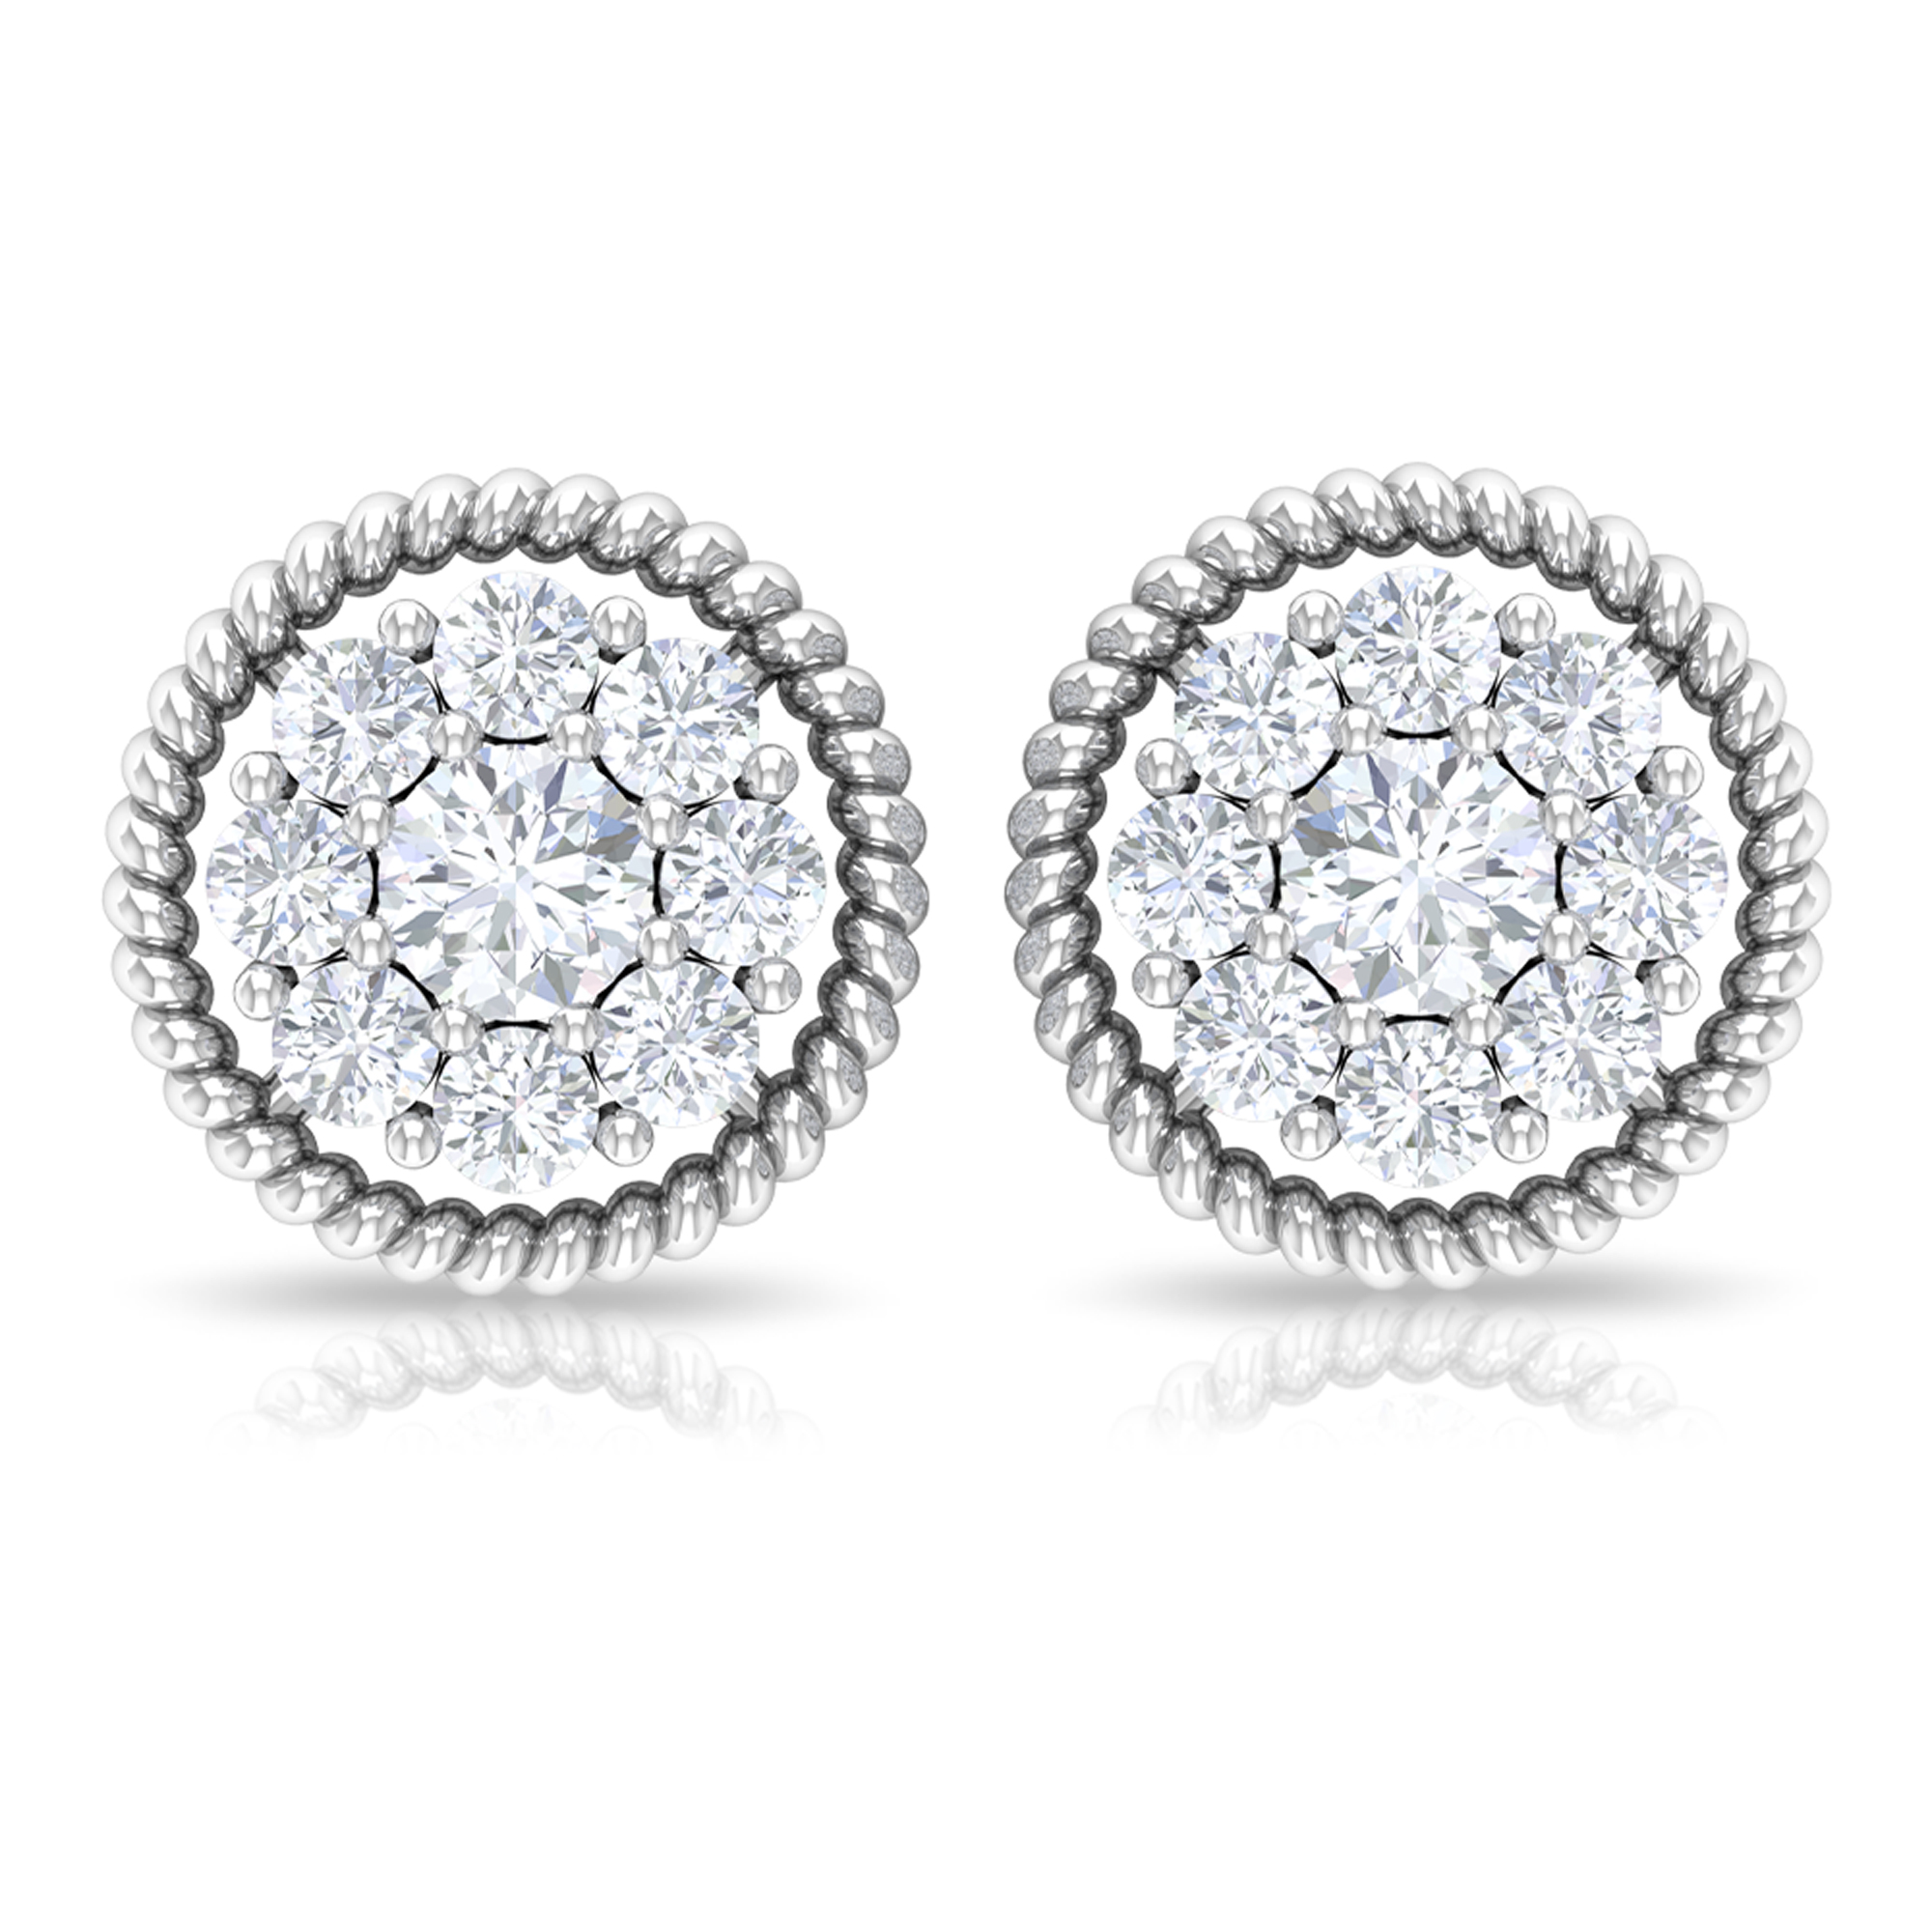 1/4 CT Diamond Cluster Stud Earrings with Gold Rope Frame